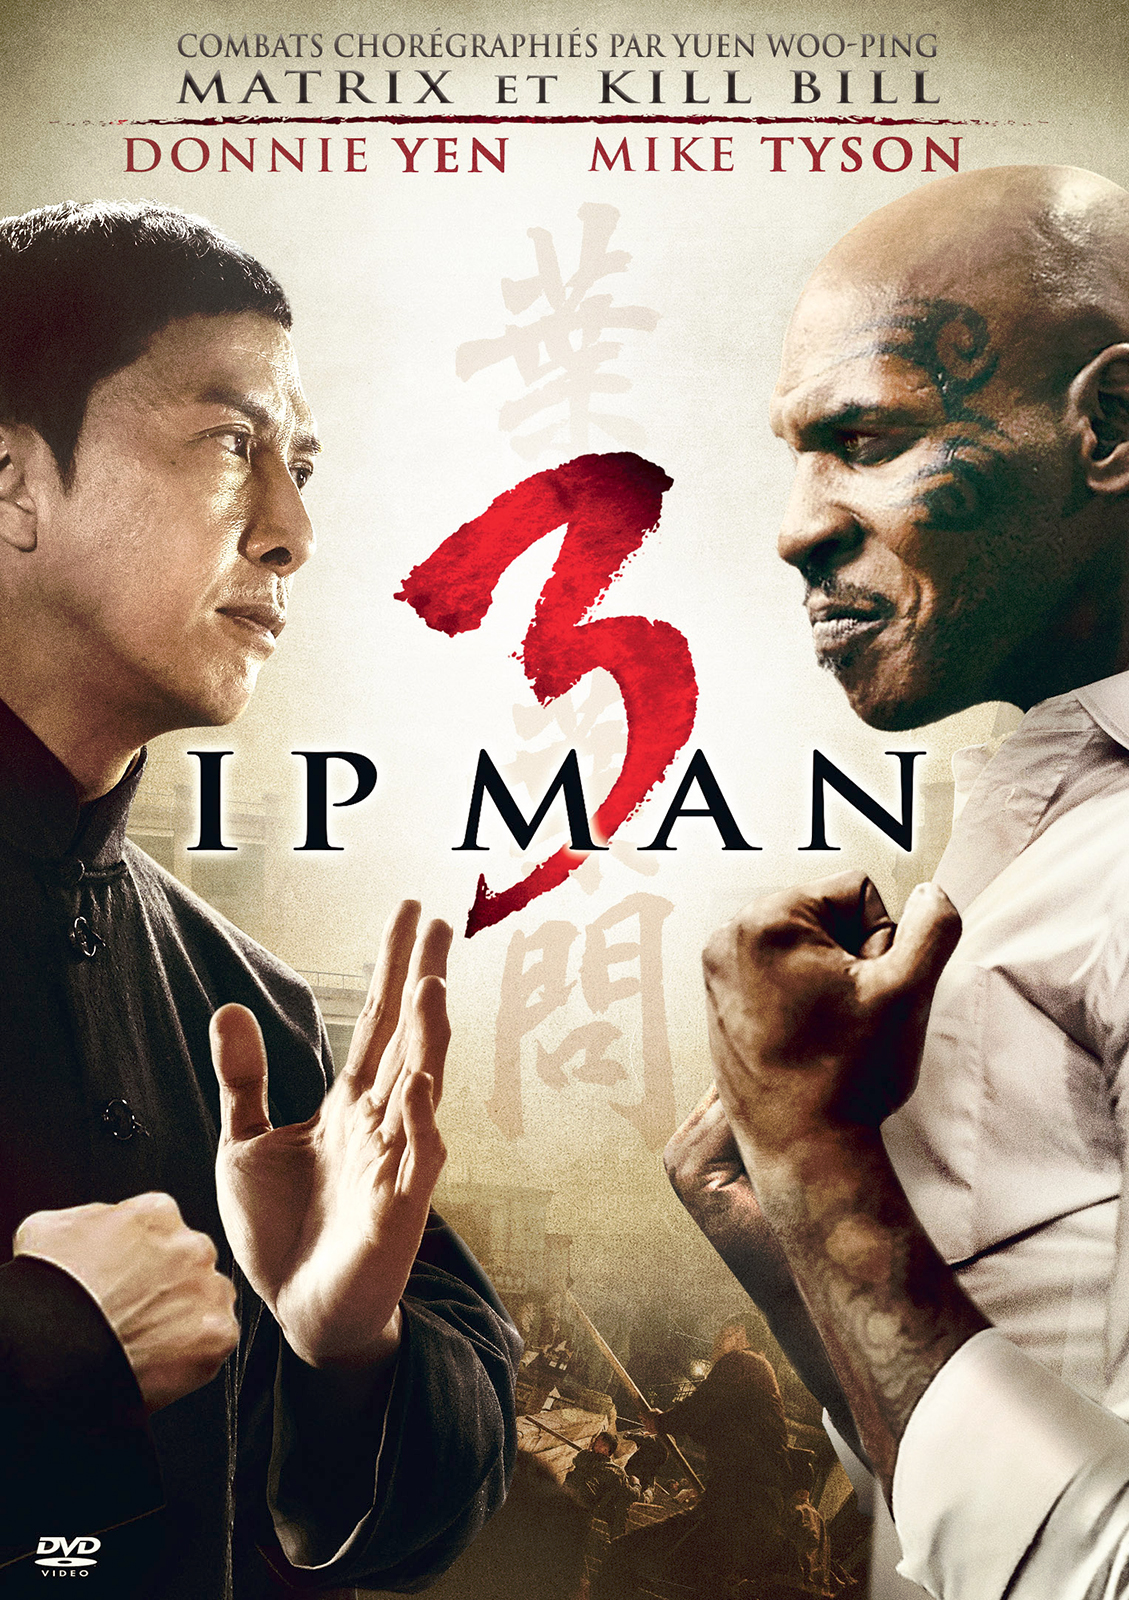 Télécharger Ip Man 3 HDLight 1080p TRUEFRENCH